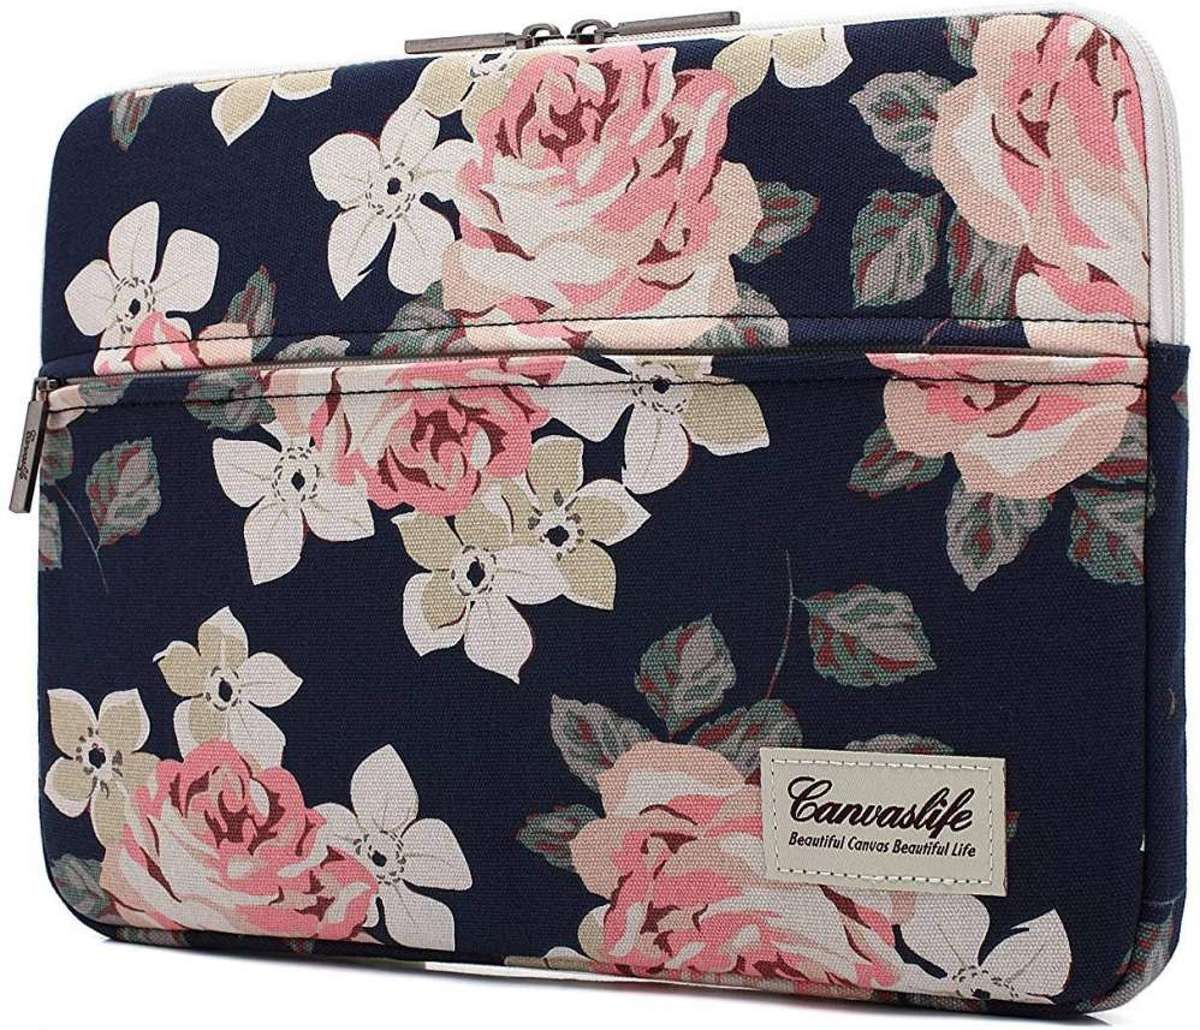 Canvaslife MacBook Pro Sleeve 15 inch - Navy Rose